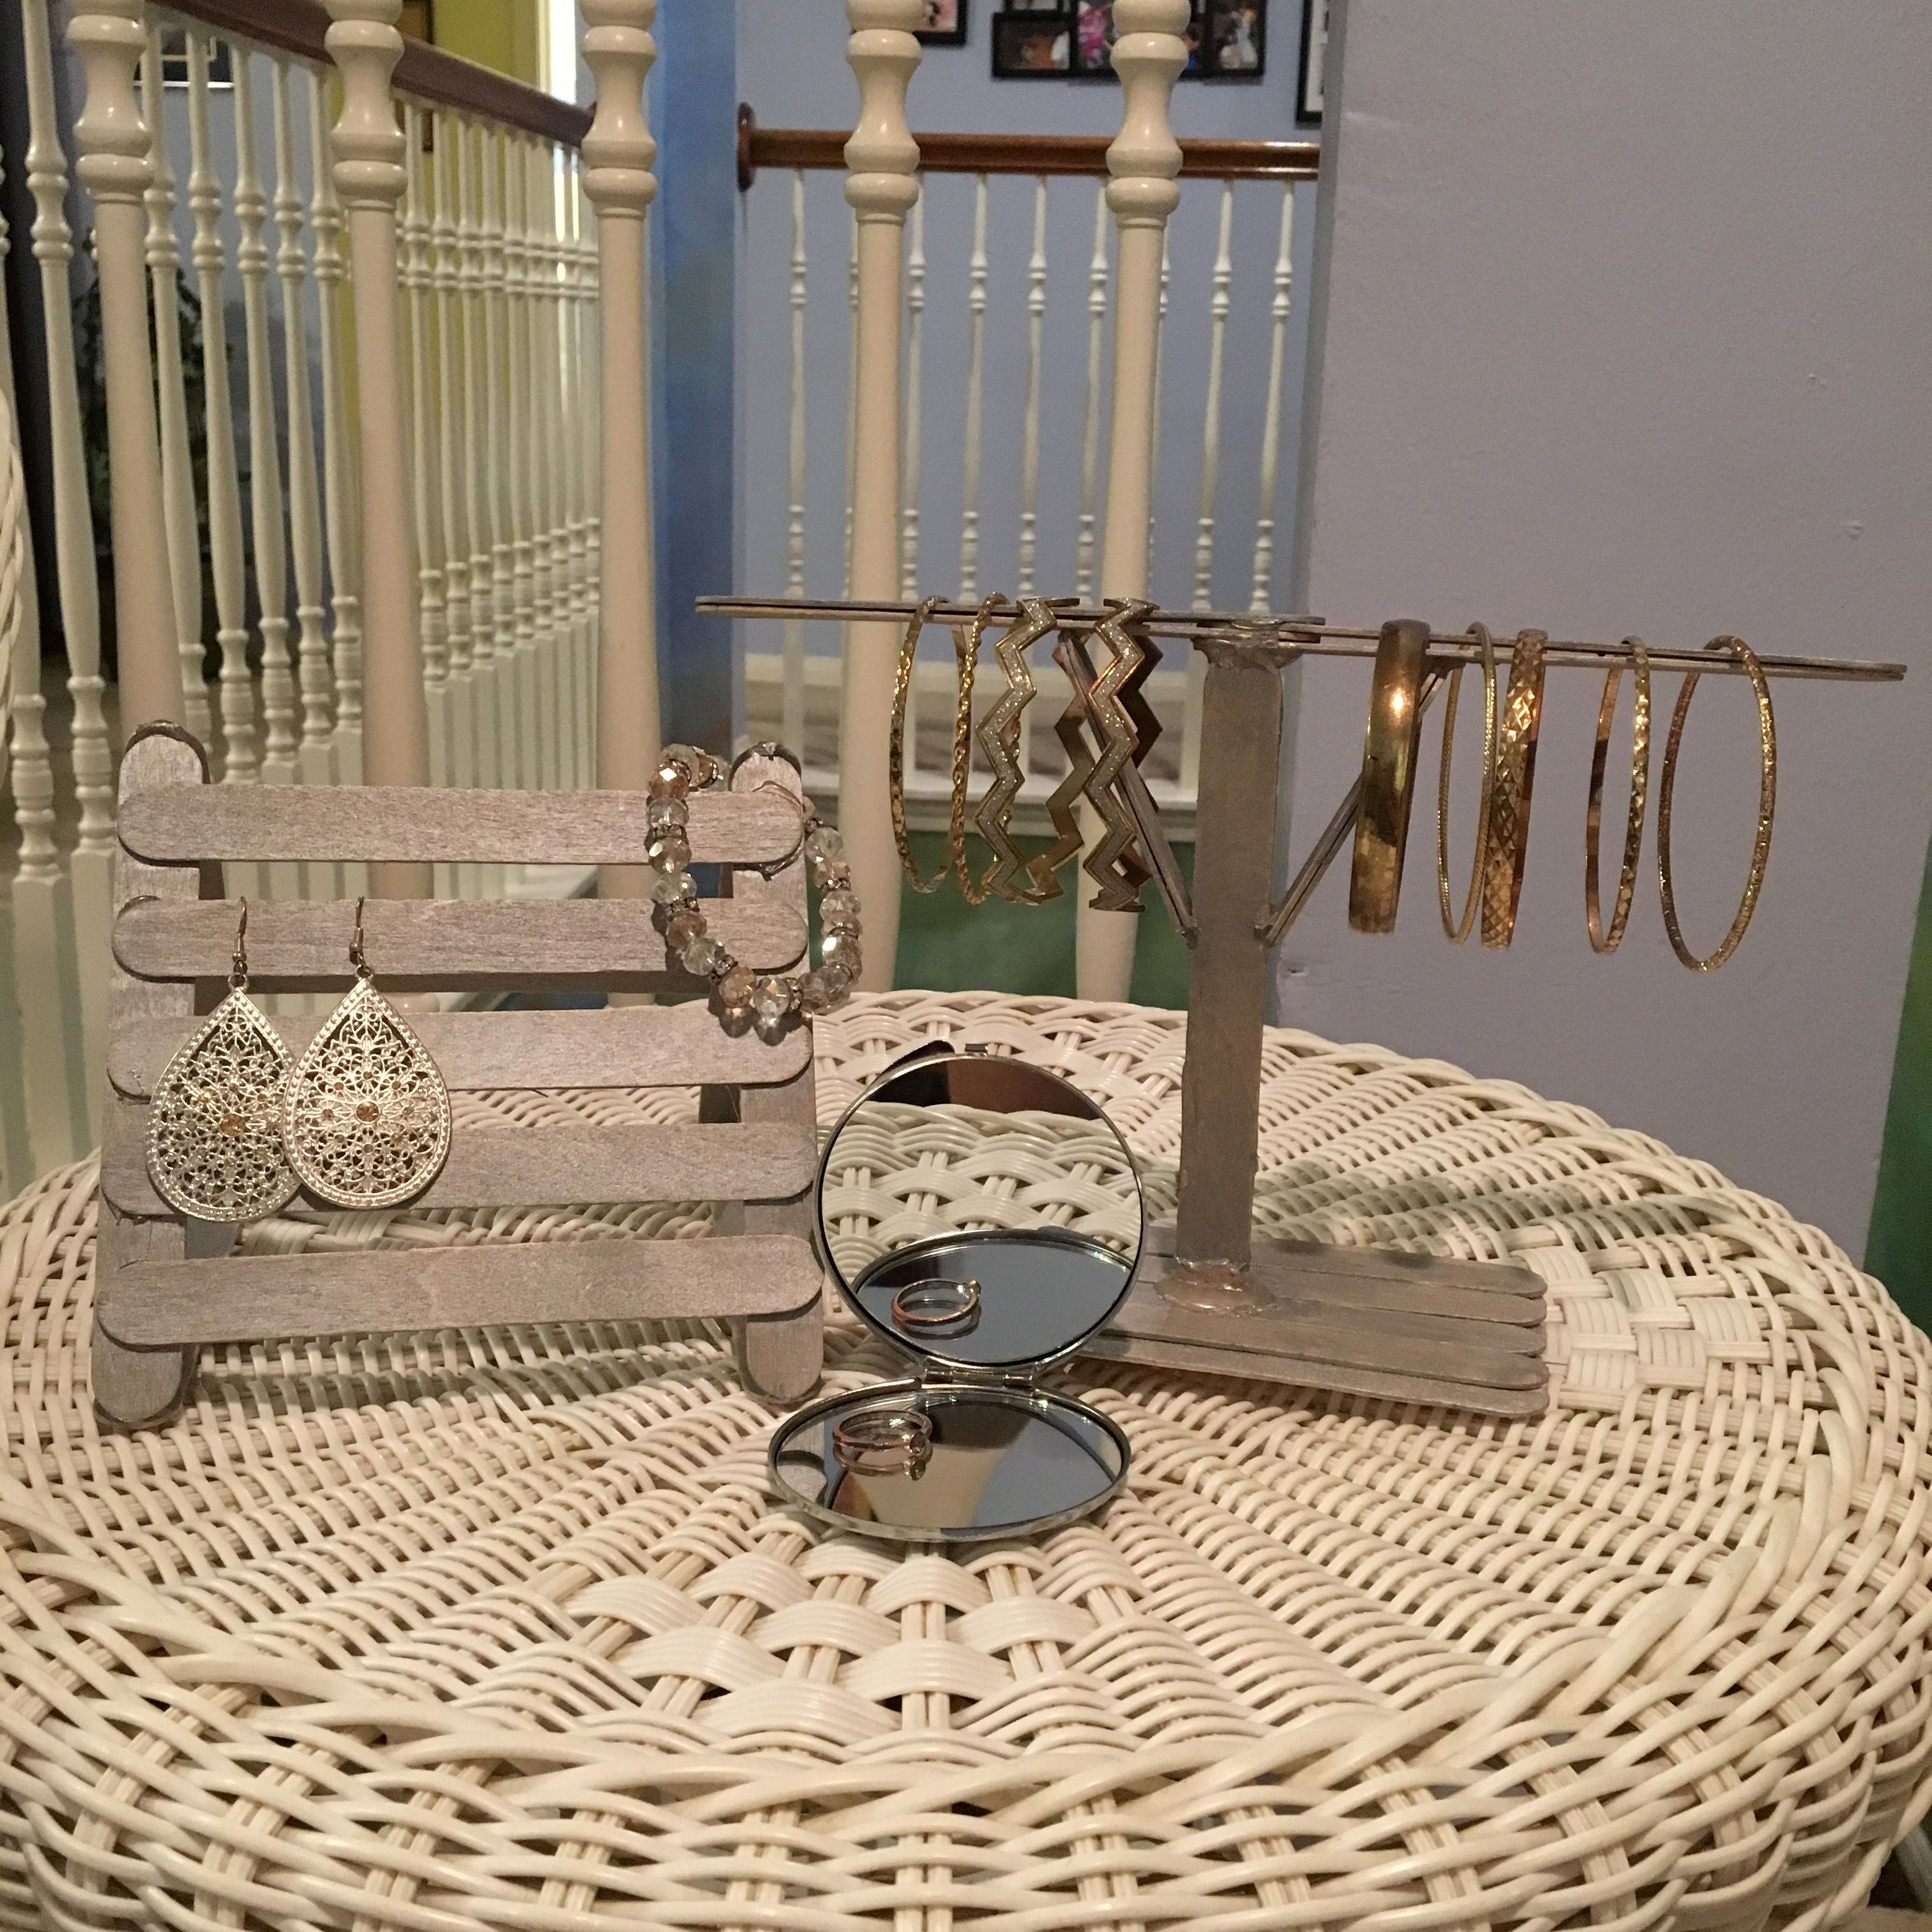 Jewelry Organizer Made From Popsicle Sticks Fun And Easy Diy Popsicle Sticks Jewelry Organization Diy Crafts